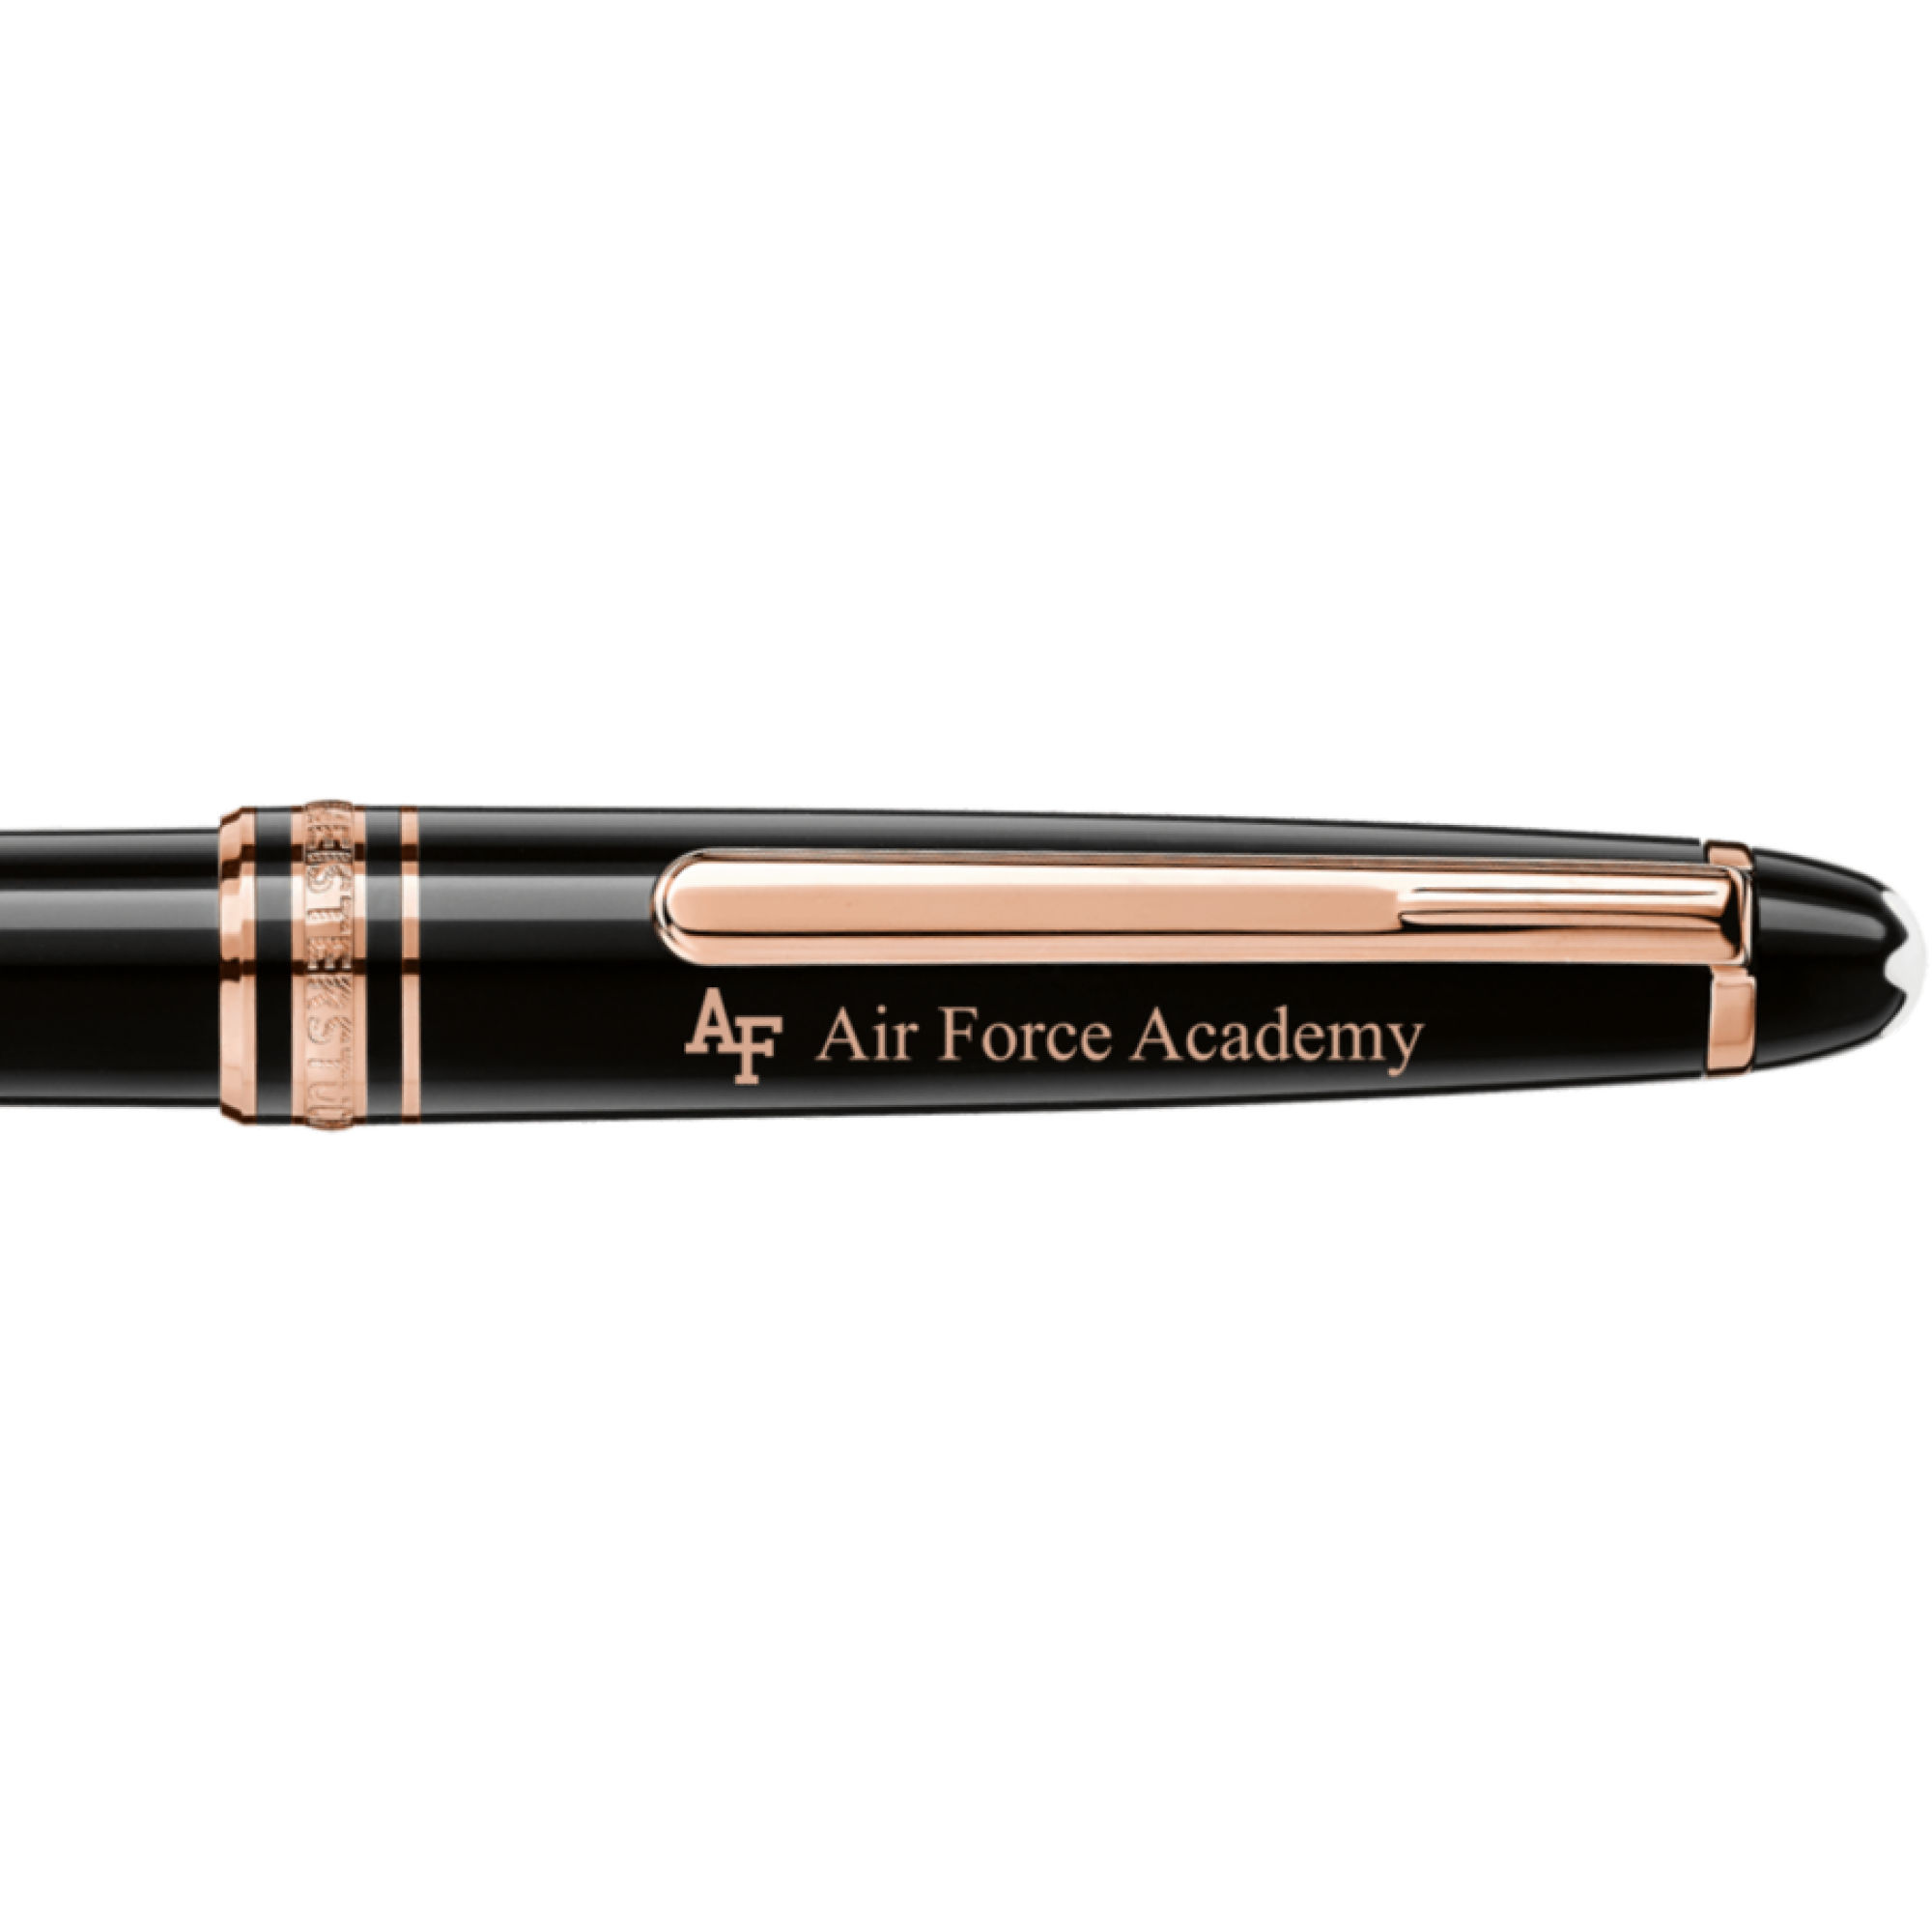 US Air Force Academy Montblanc Meisterstück Classique Ballpoint Pen in Red Gold